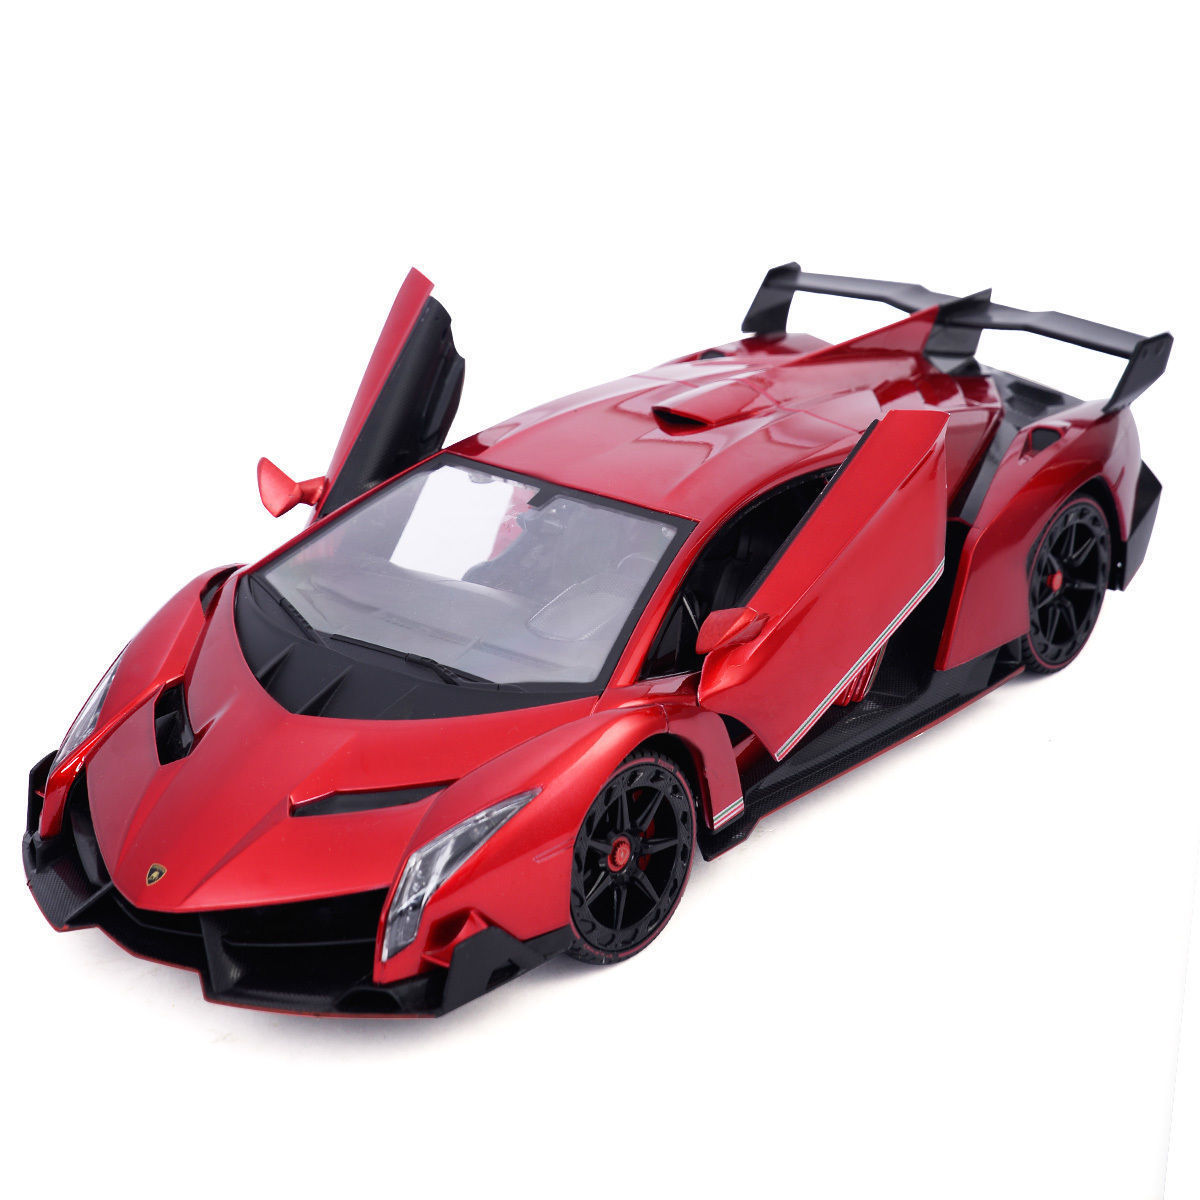 remote control rc cars with 394047125 on Brum as well 190 2s 6 6v 2000 Mah Robitronic Life Battery Tests also Electric Drag Race Tesla P85 Model S Vs Rc Car also 20 Strange Rc Vehicles That Will Make You Say Huh additionally 32733666129.